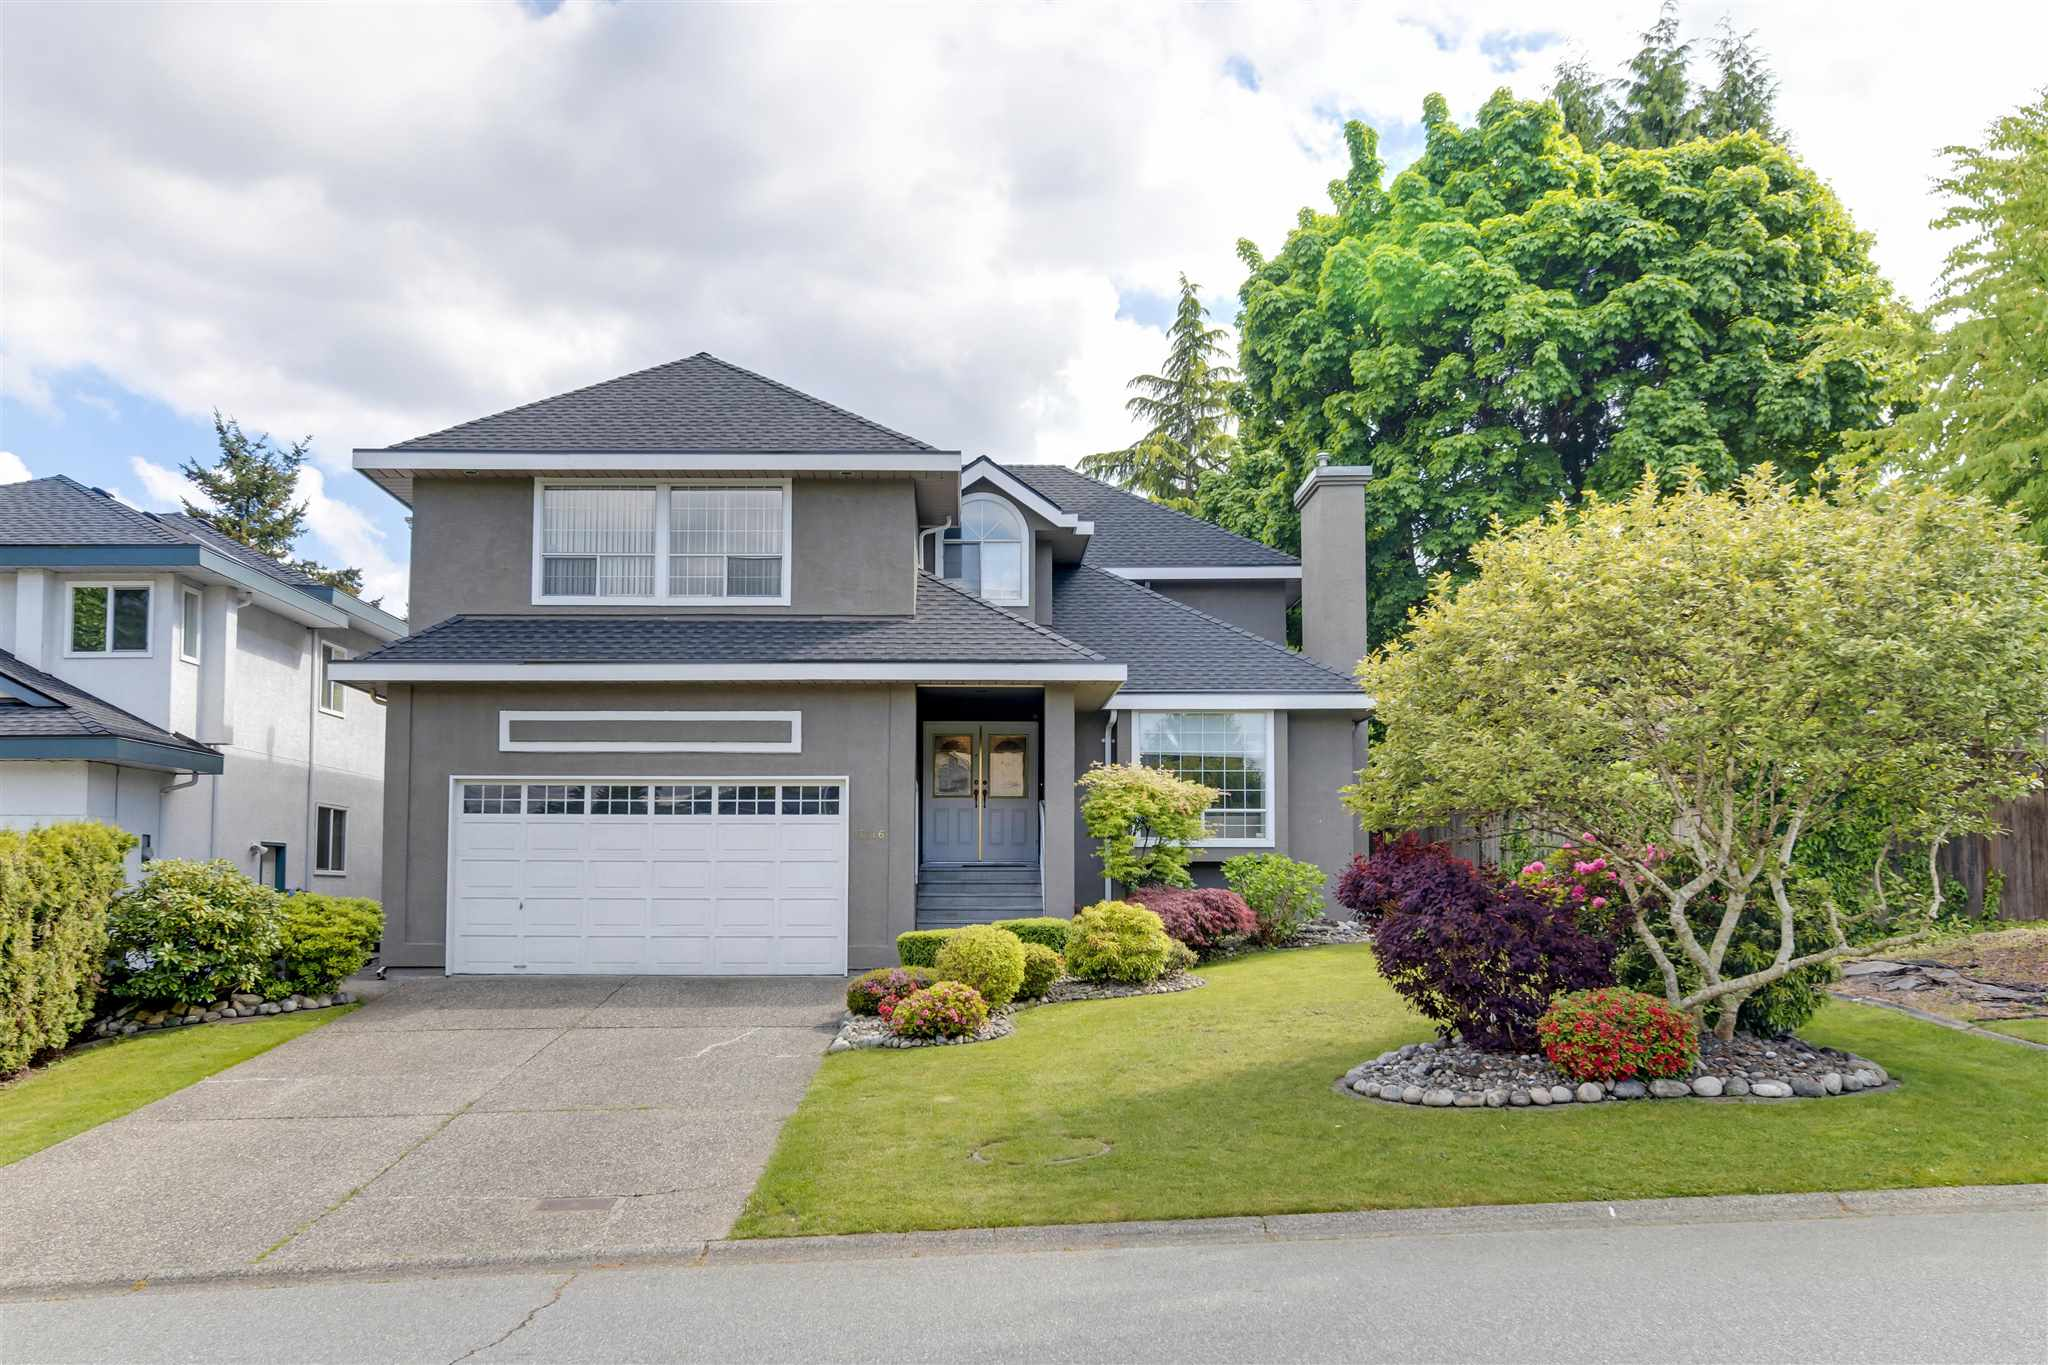 17176 103 AVENUE - Fraser Heights House/Single Family for sale, 4 Bedrooms (R2606989)